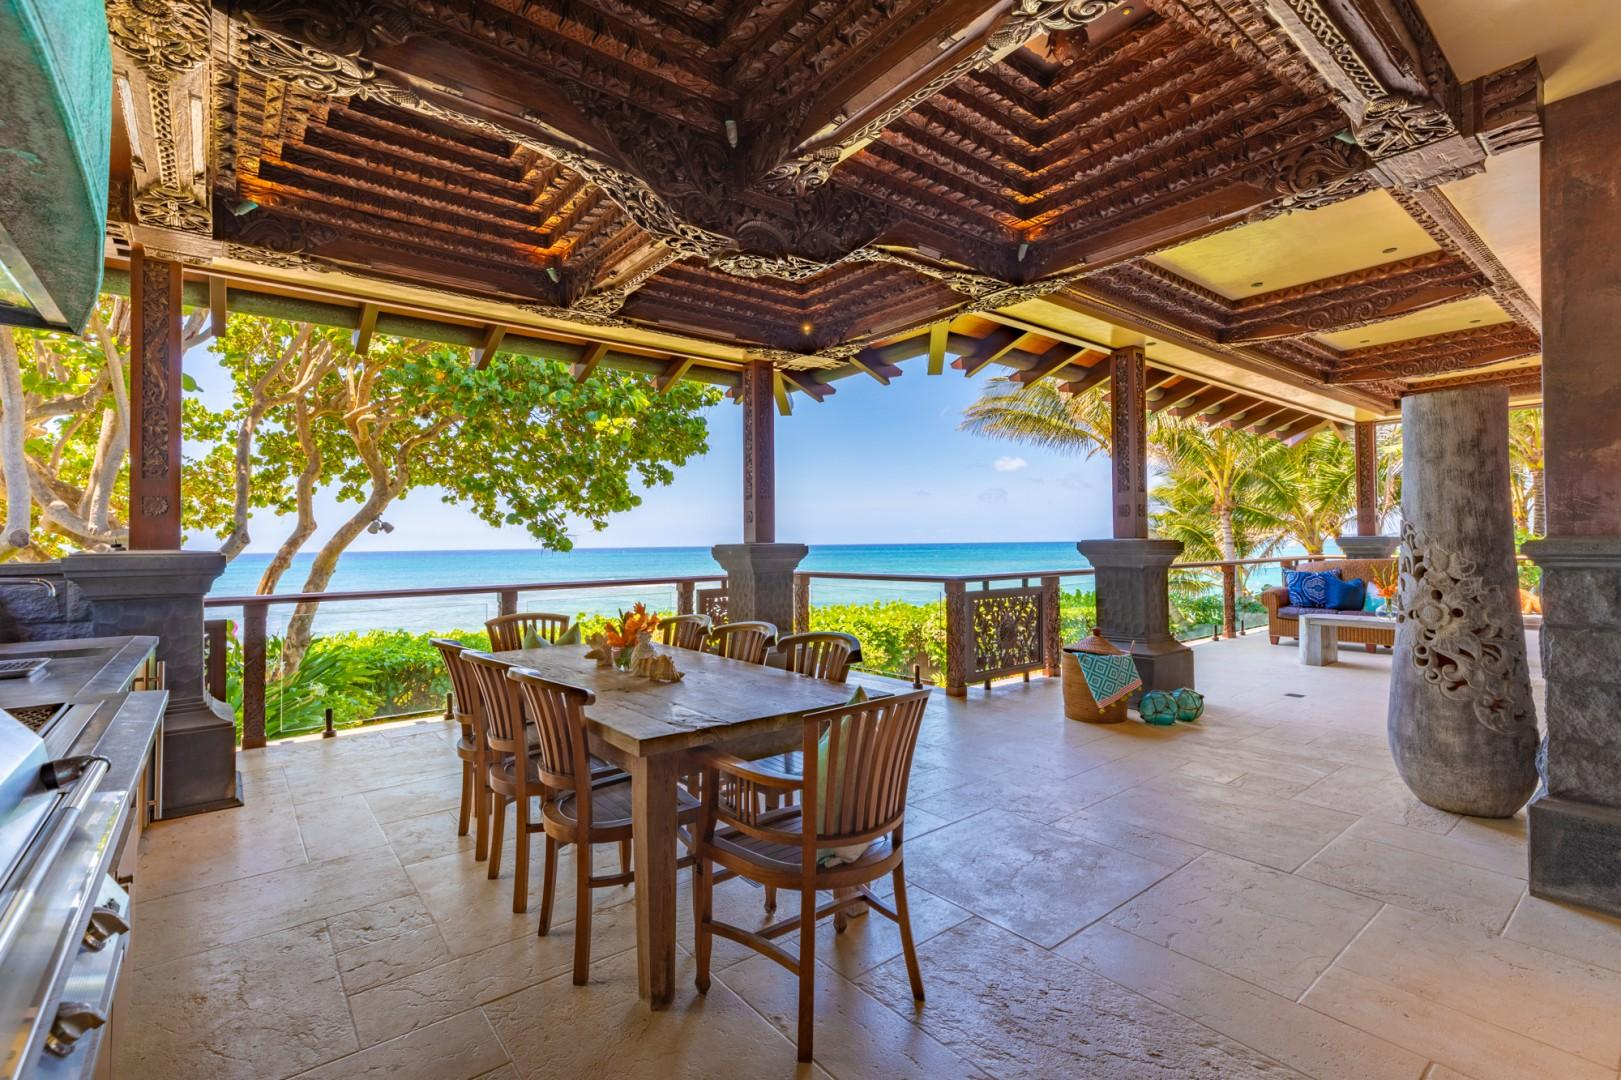 Oceanfront lanai w/BBQ and your own Beer Keg on Tap